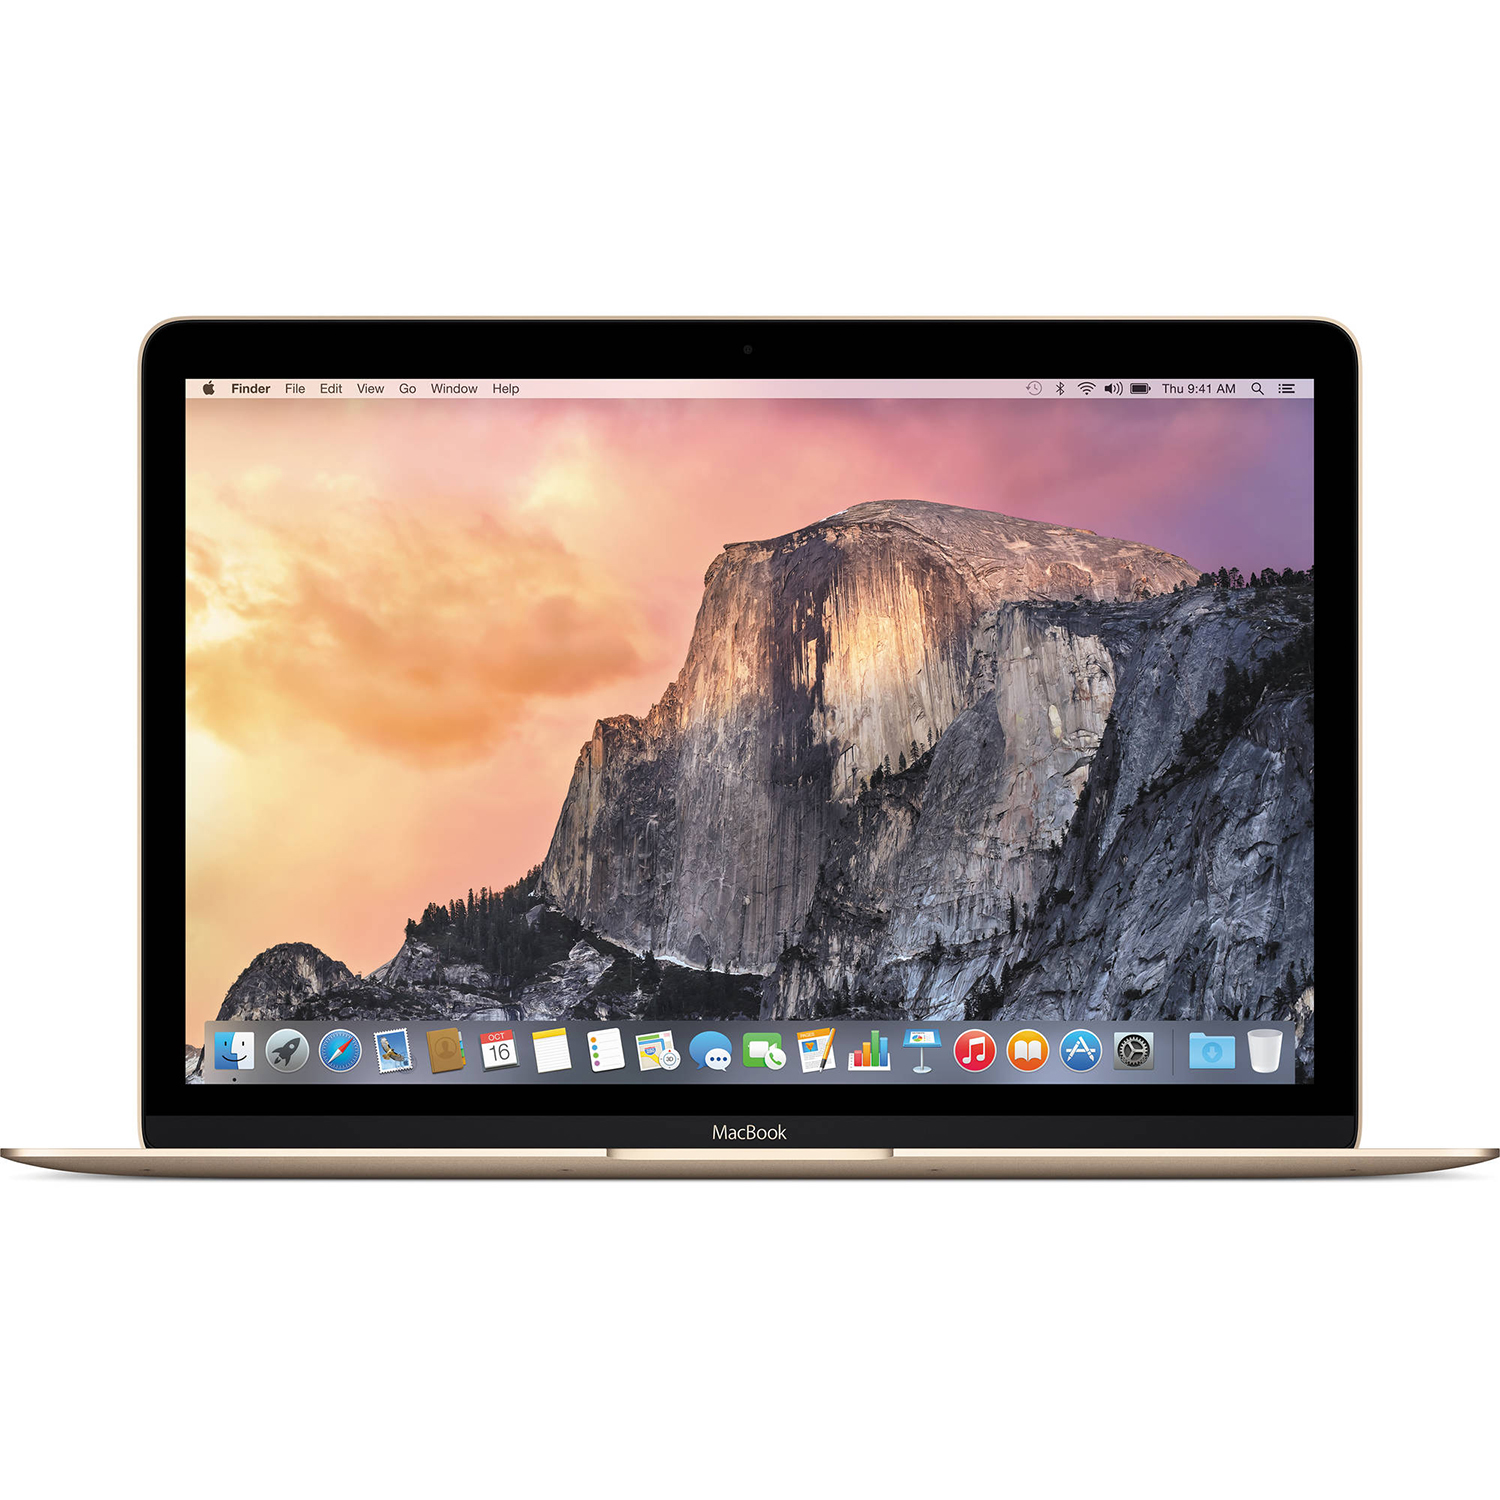 "Apple MacBook 12"" Retina Display Intel Dual-Core 1.1 GHz 256GB Gold MK4M2LLA by Apple"